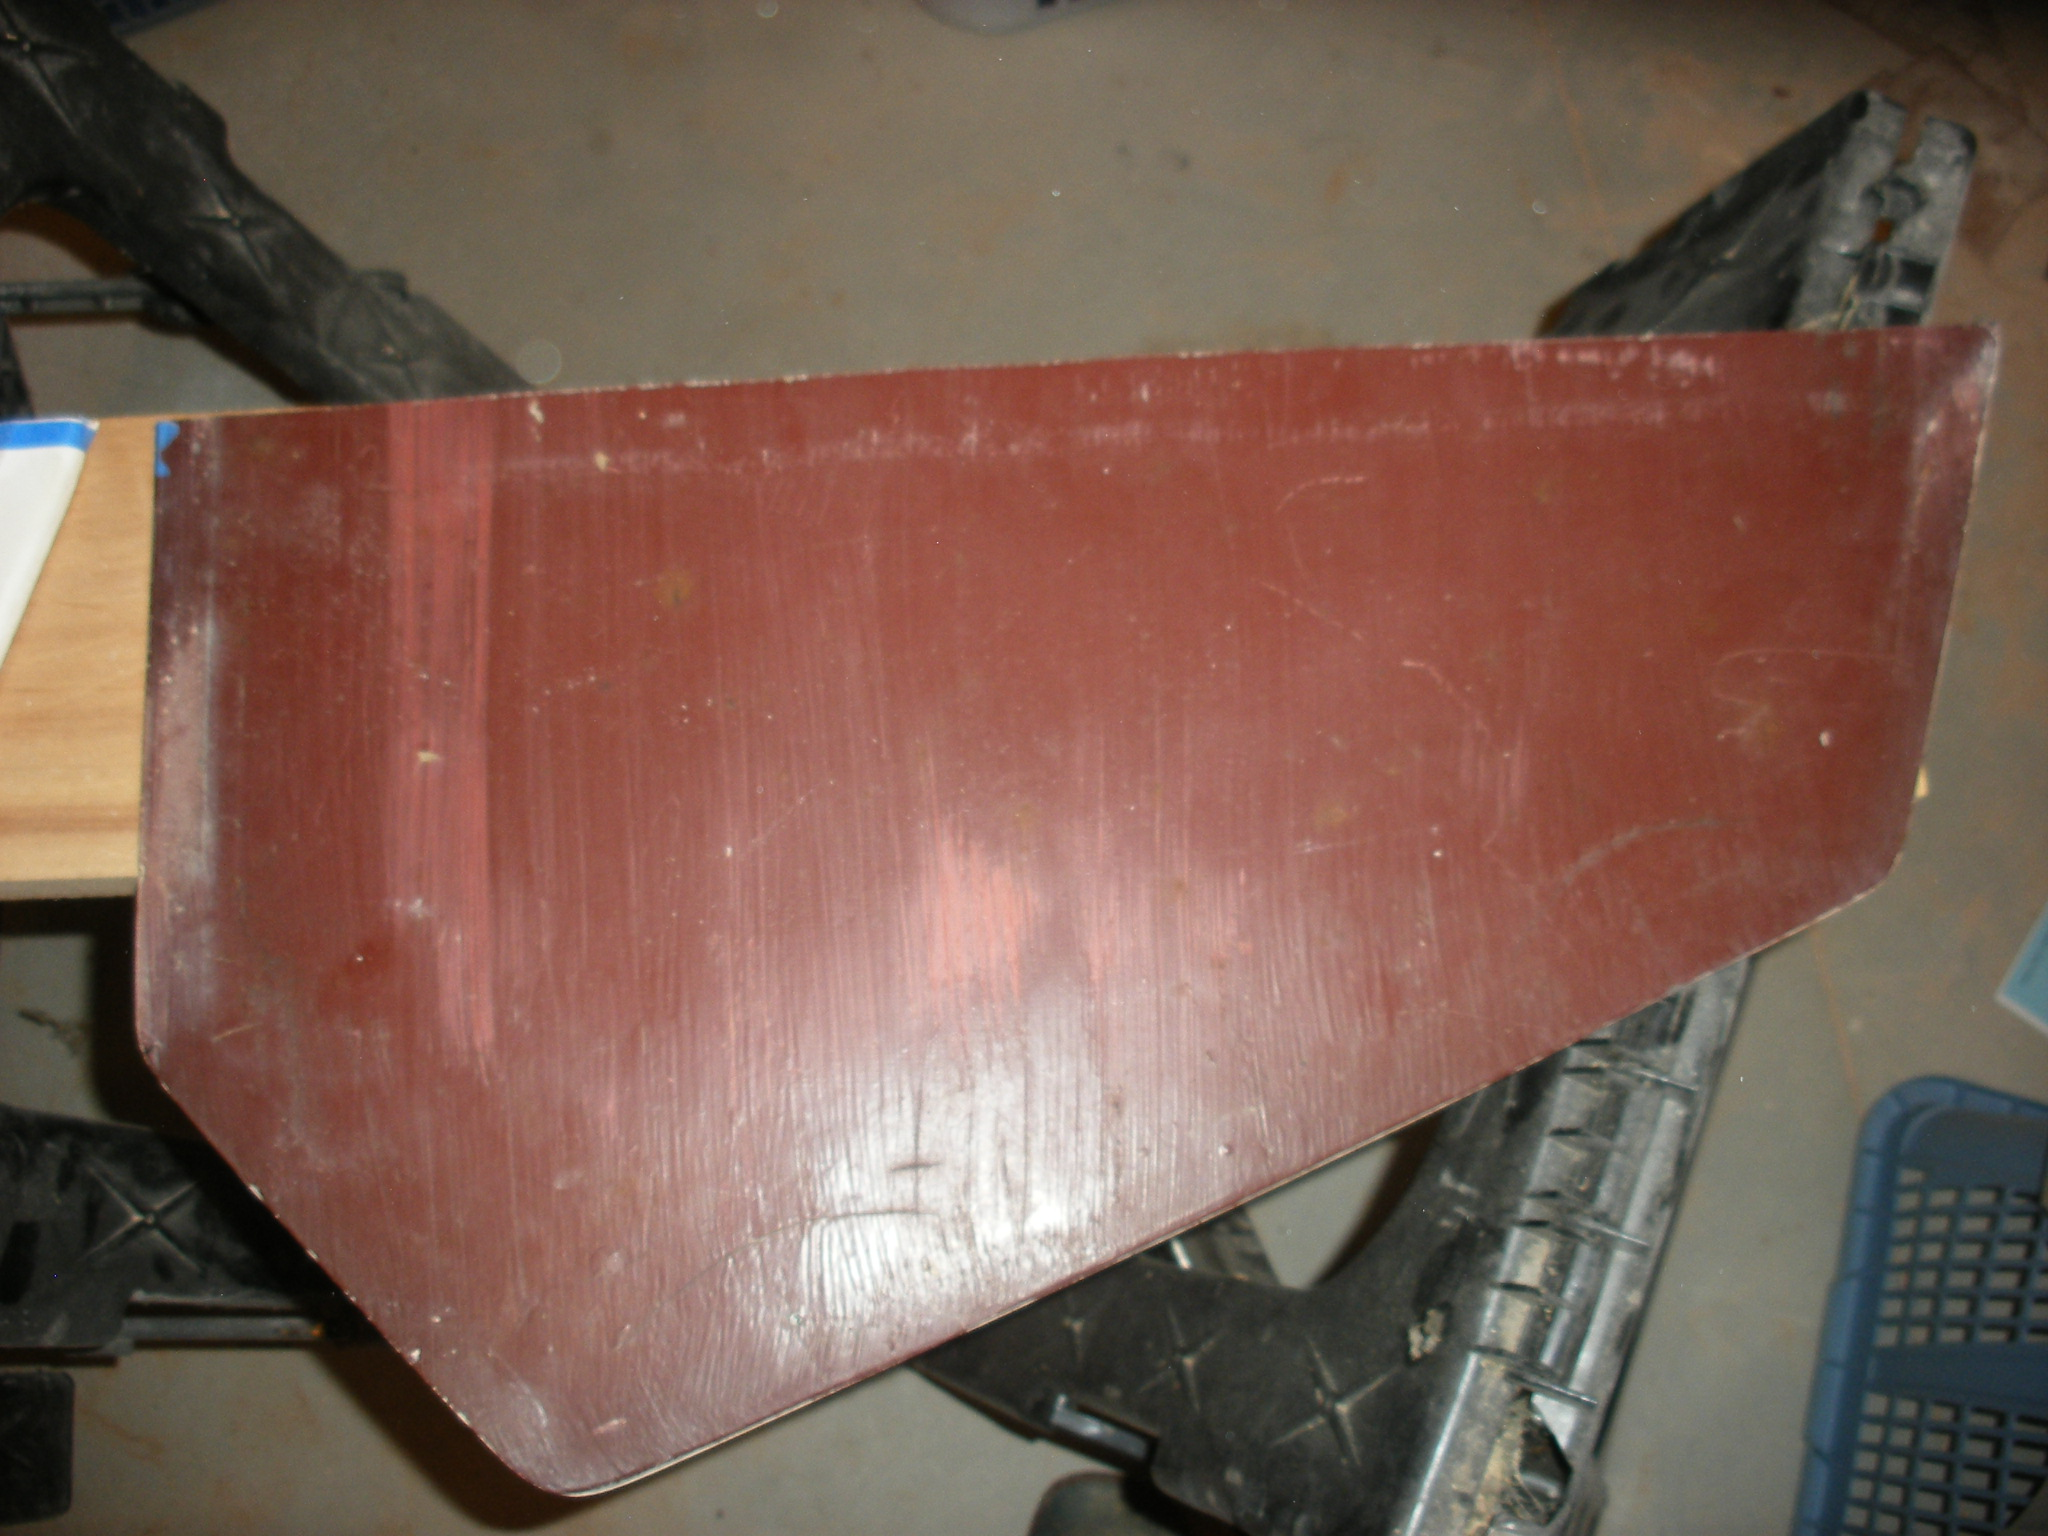 Bottom of hatch after cut.